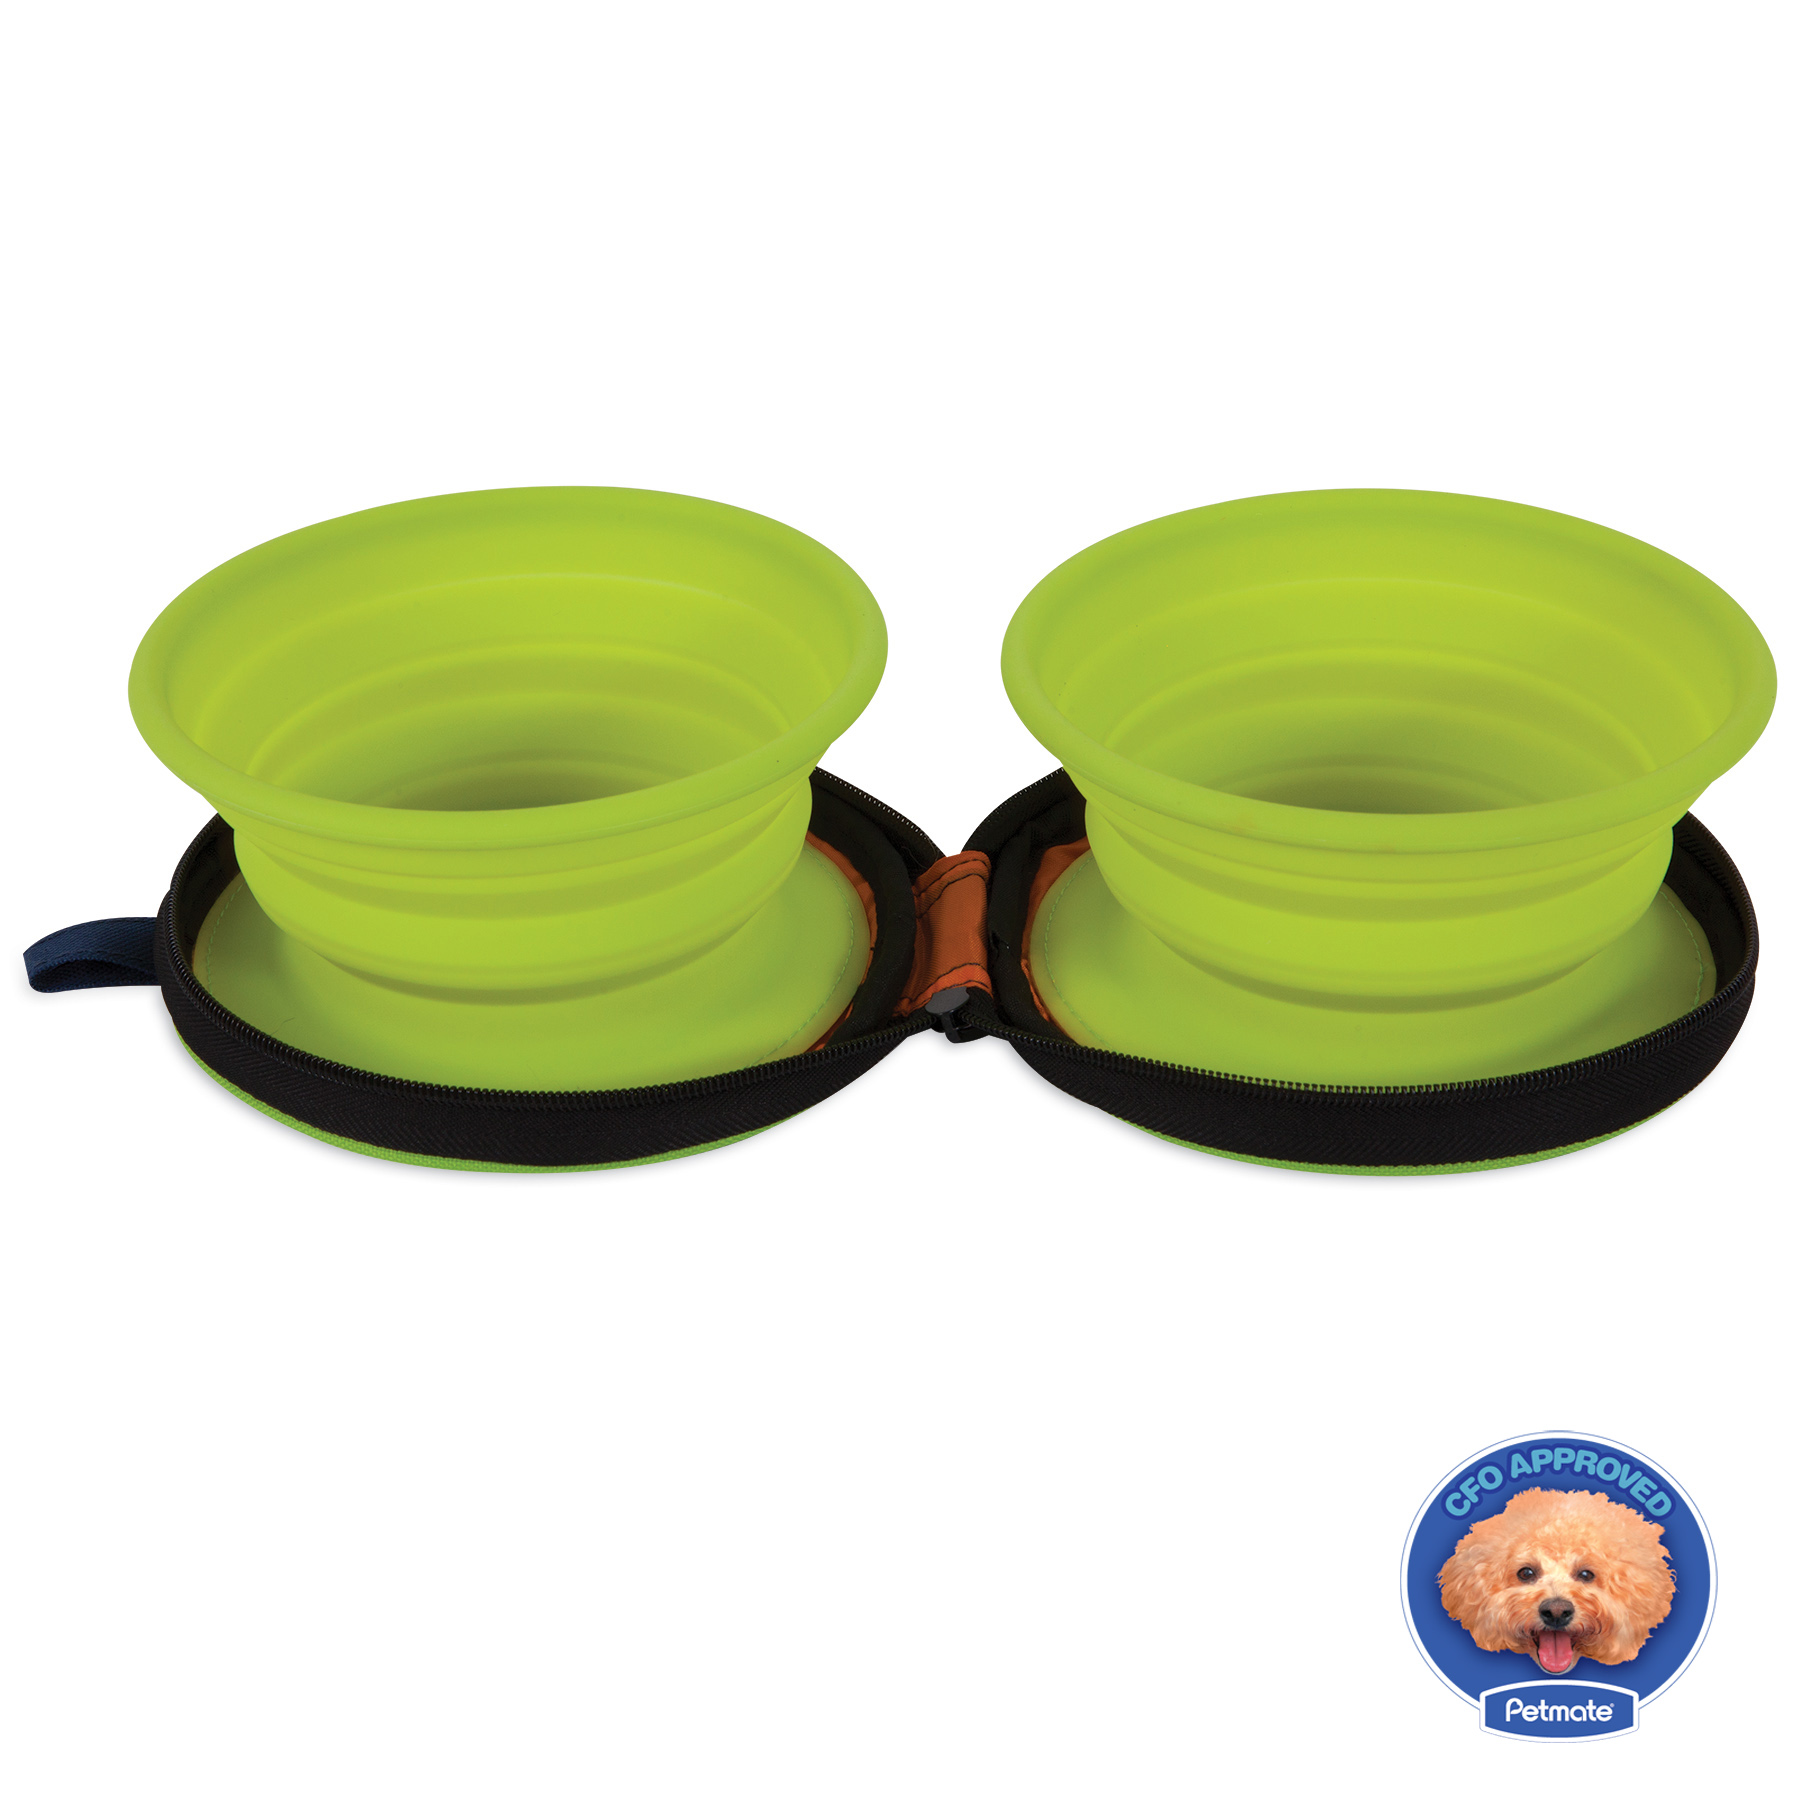 Petmate Silicone Duo Travel Dog Bowl, Small